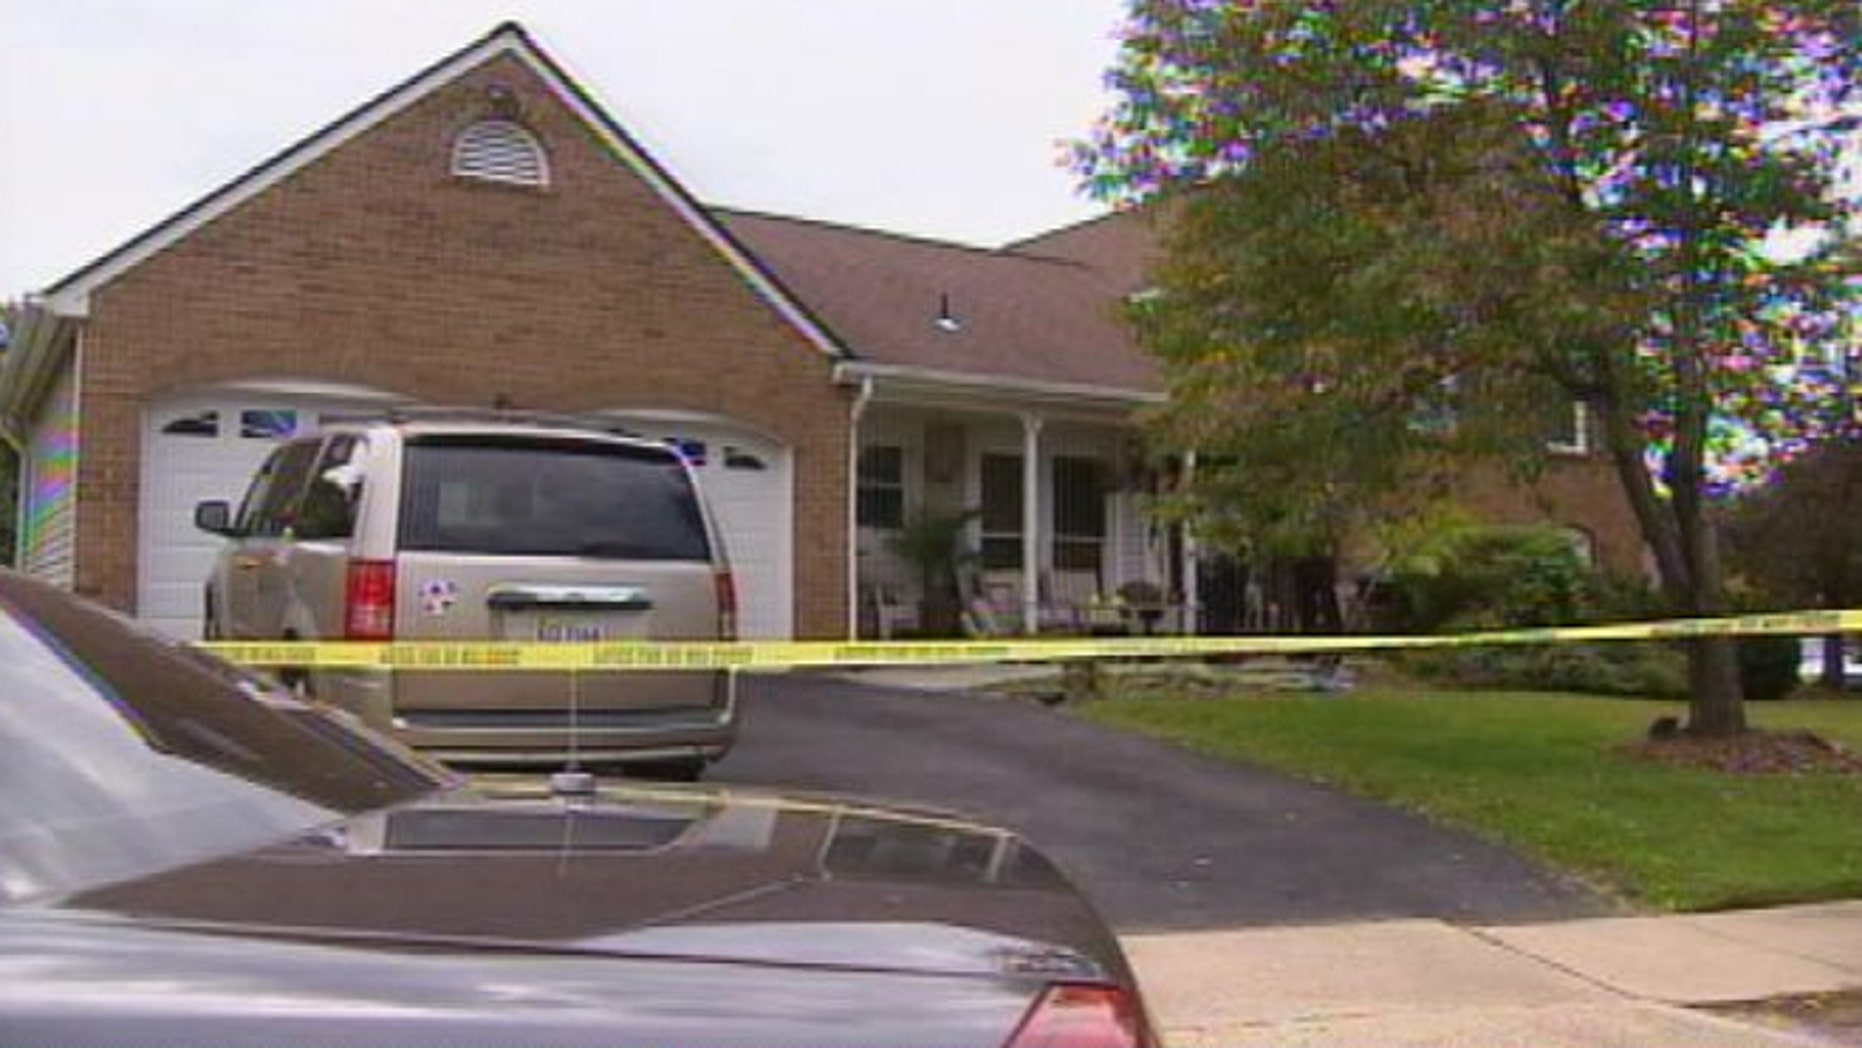 Four family members were found dead Tuesday inside their Herndon, Va., home.